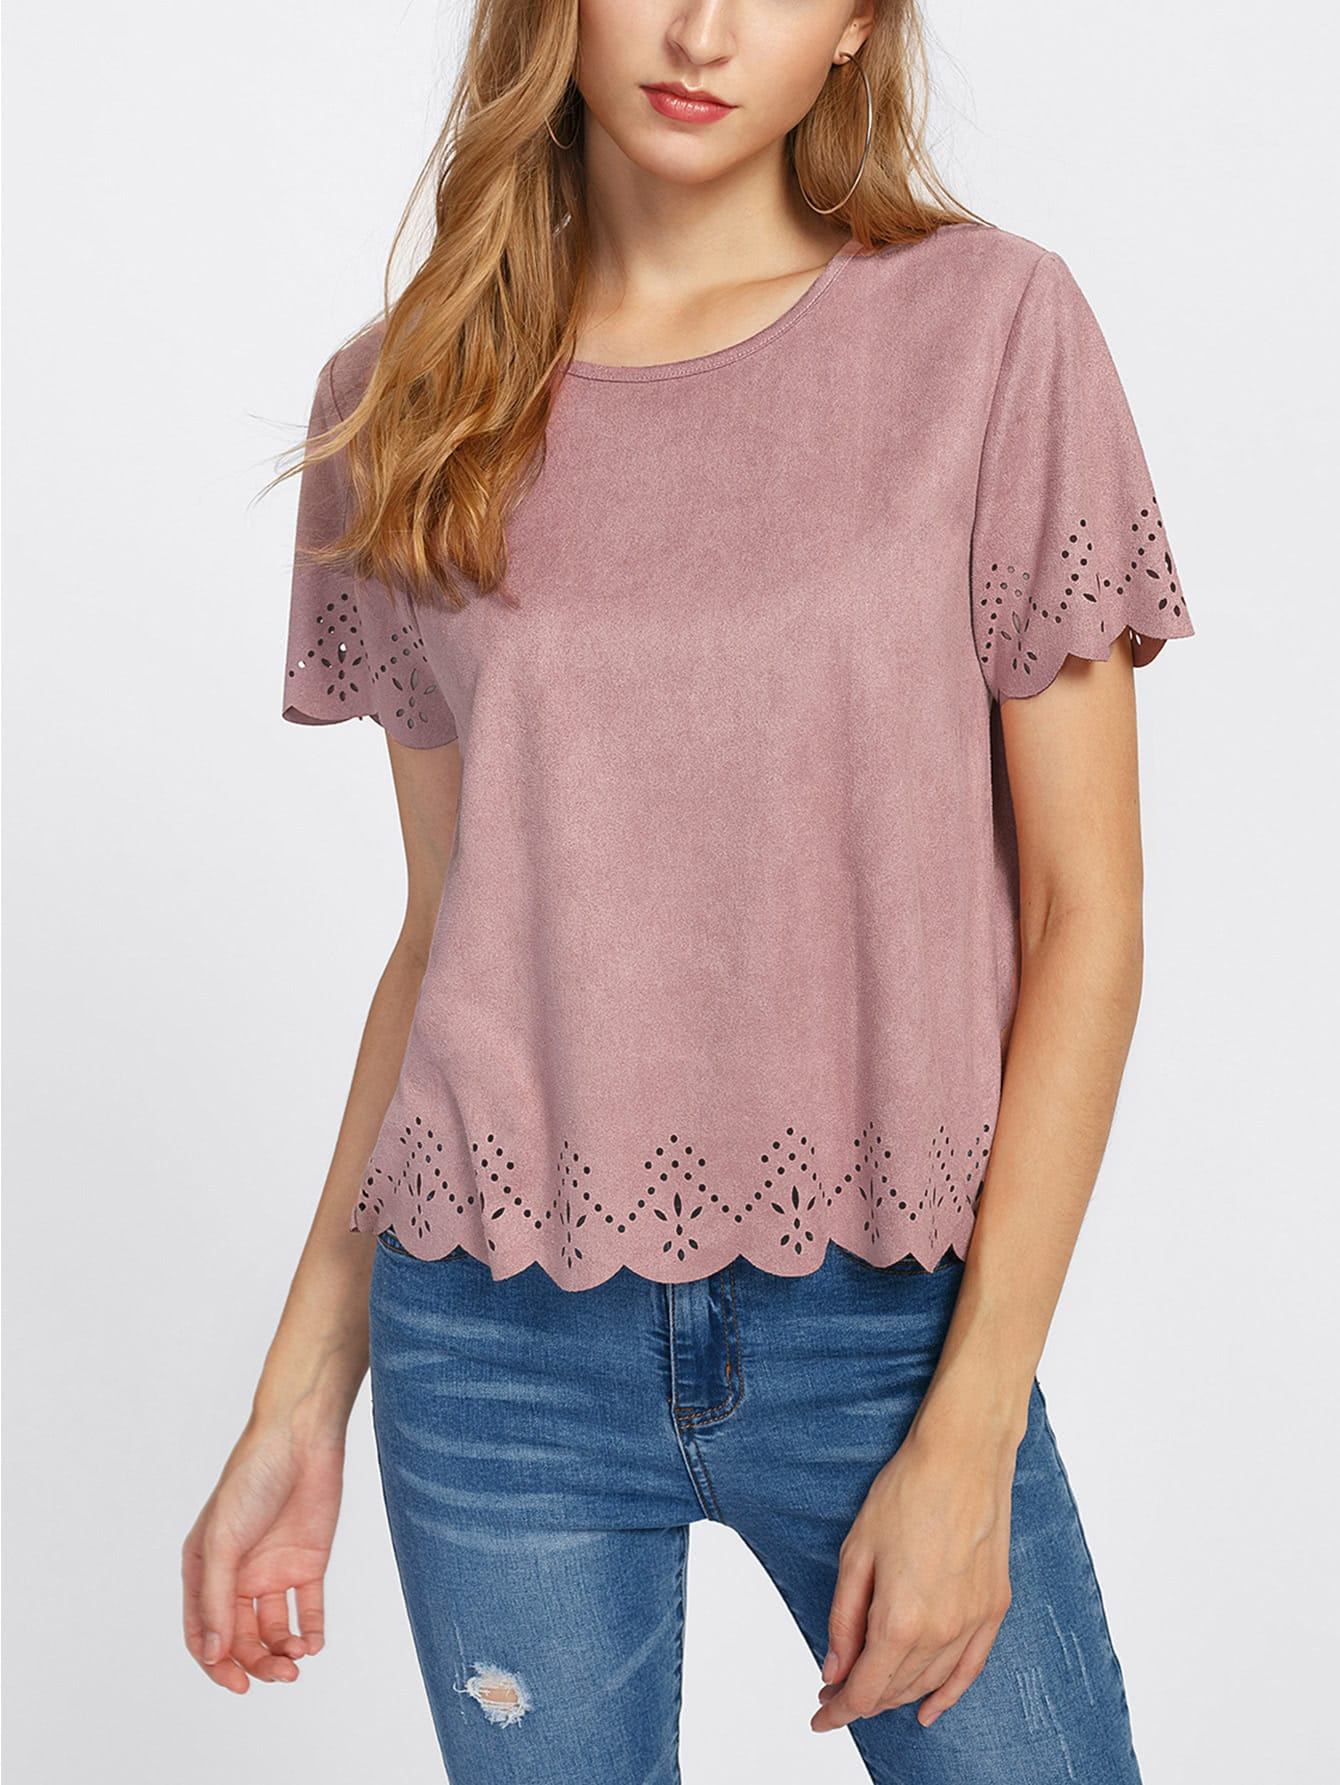 Scalloped Laser Cut Faux Suede Blouse bow detail fluted sleeve laser cut scalloped blouse